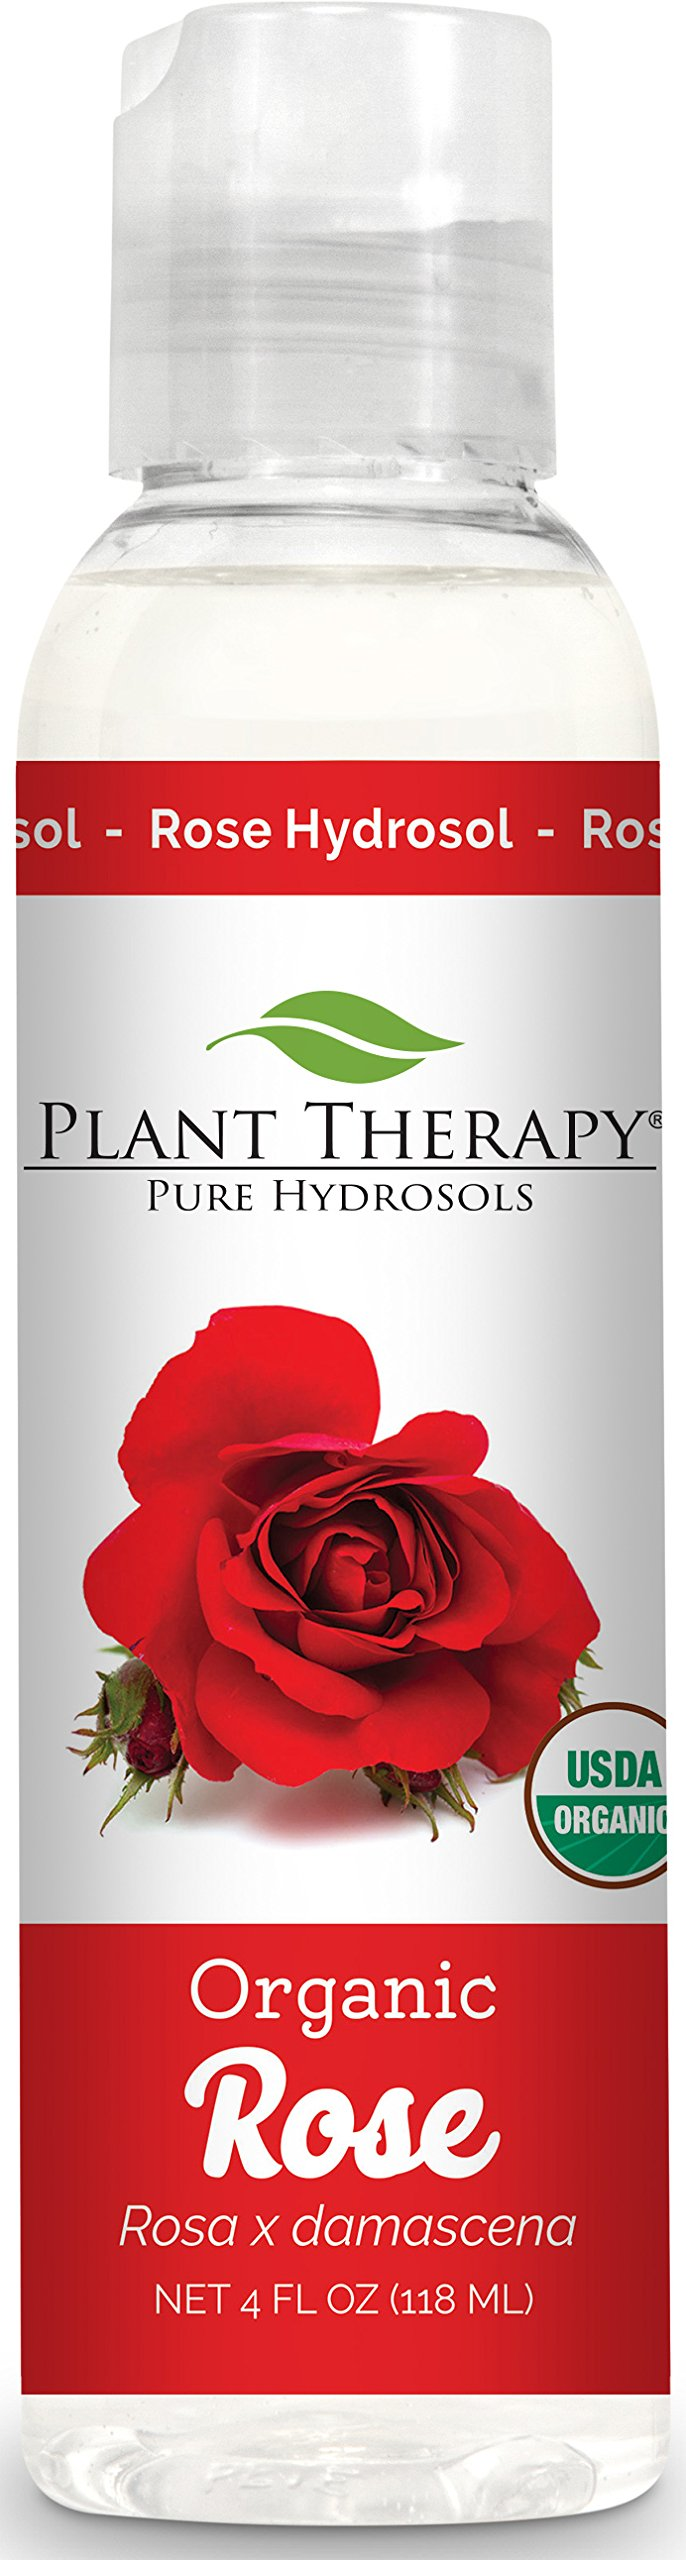 Plant Therapy Rose Organic Hydrosol 4 oz By-Product of Essential Oils by Plant Therapy